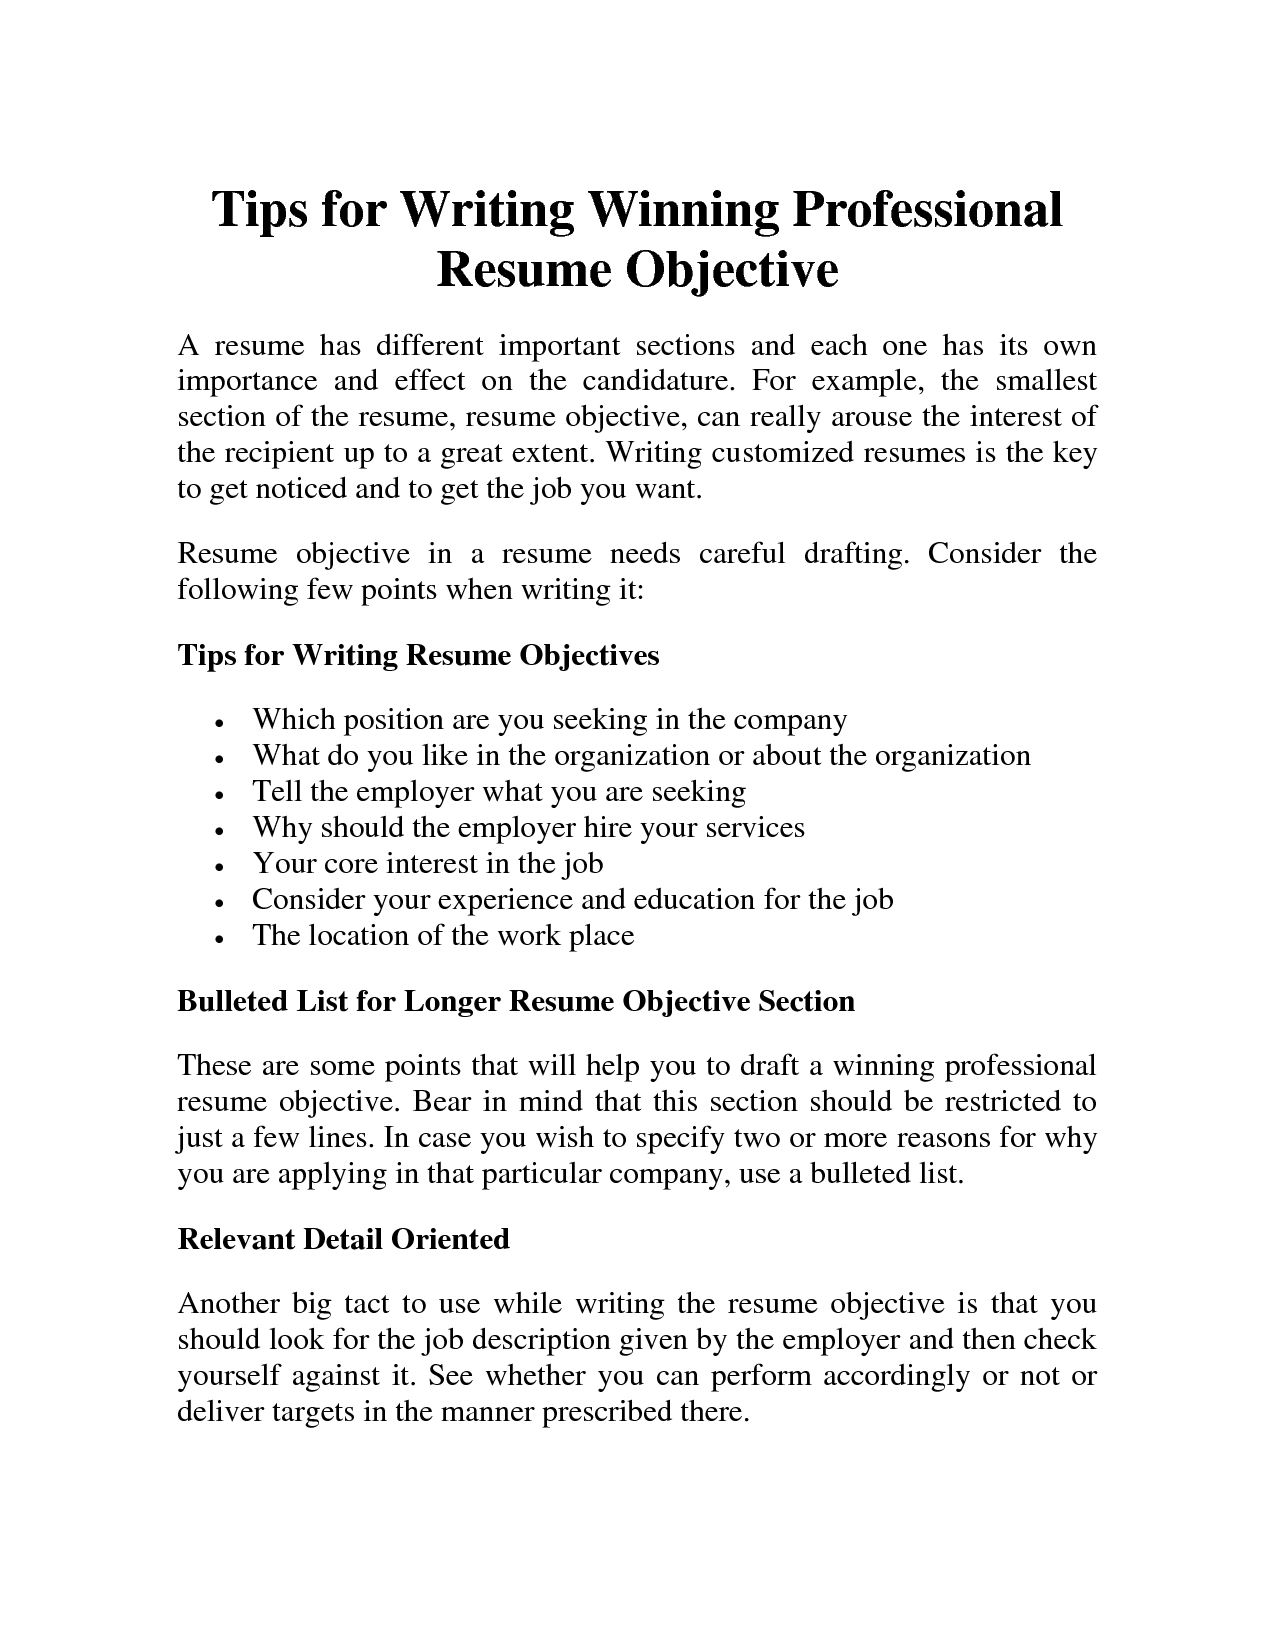 How To Write An Objective For A Resume Professional Resume Objective Samplesprofessional Resume Objective